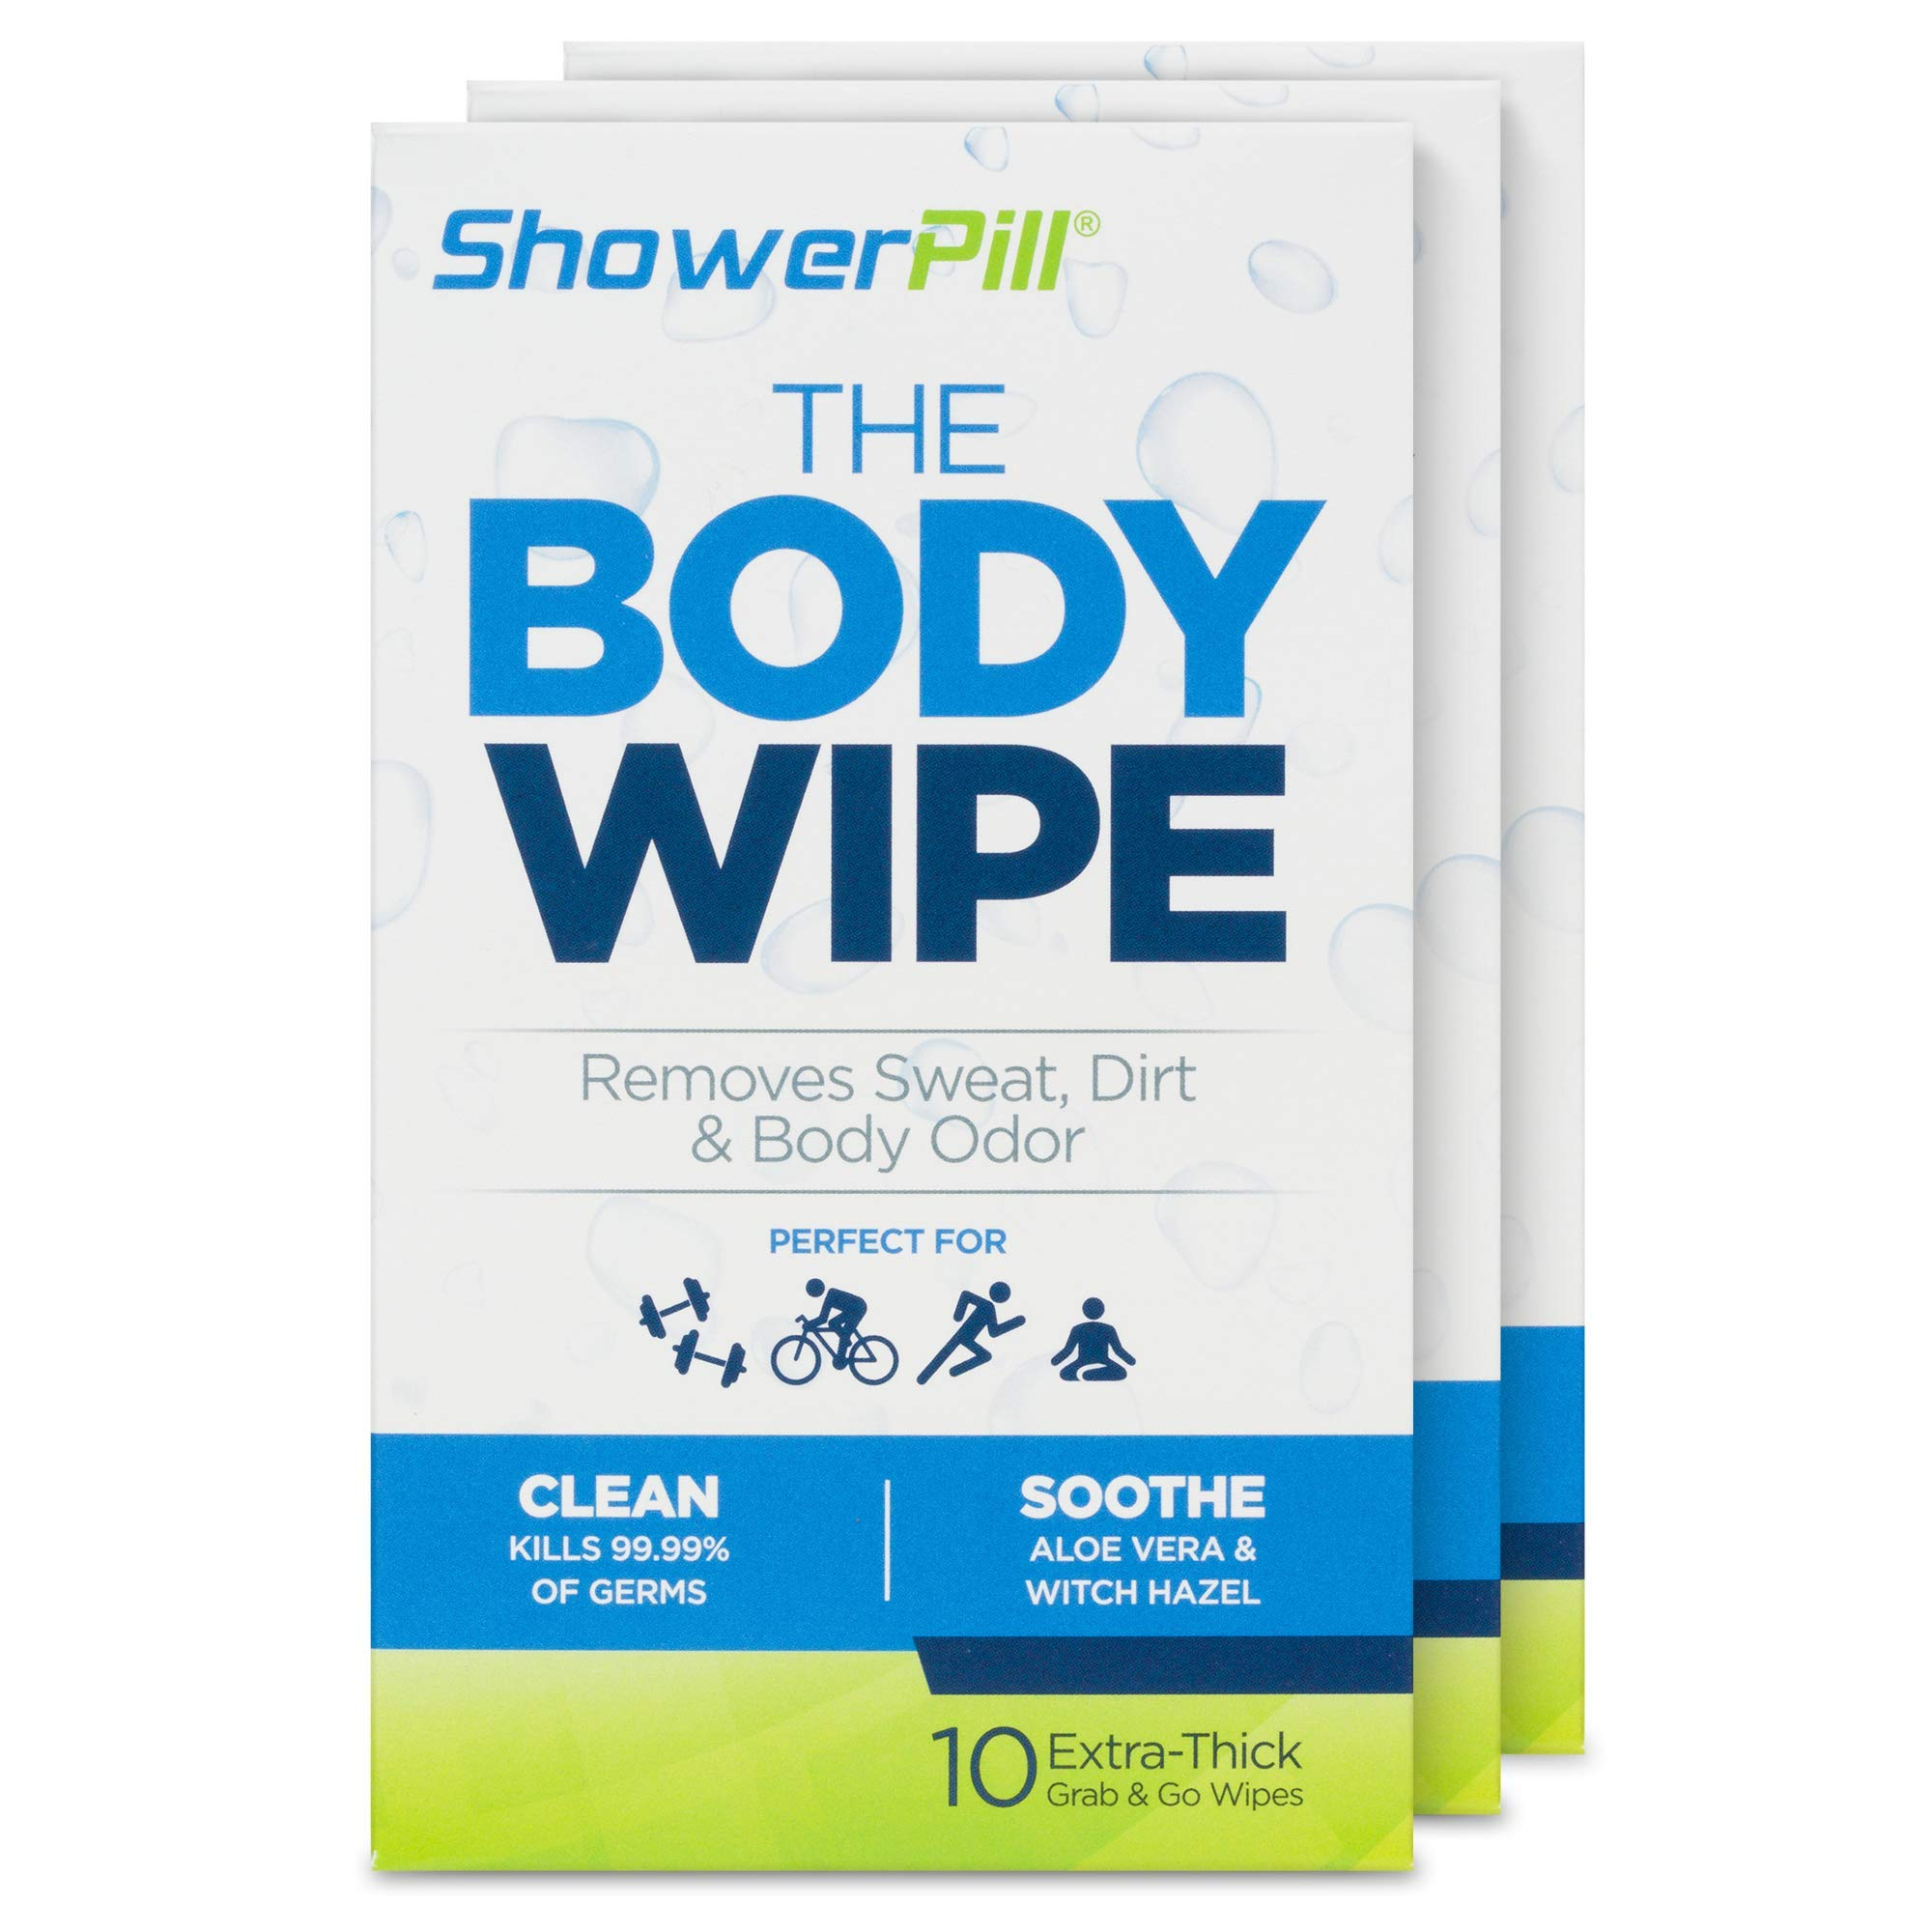 New The Body Wipe by ShowerPill - No Shower Wipes for Adults for Post-Workout or Camping Bathing - 30 Individually Wrapped Wipes